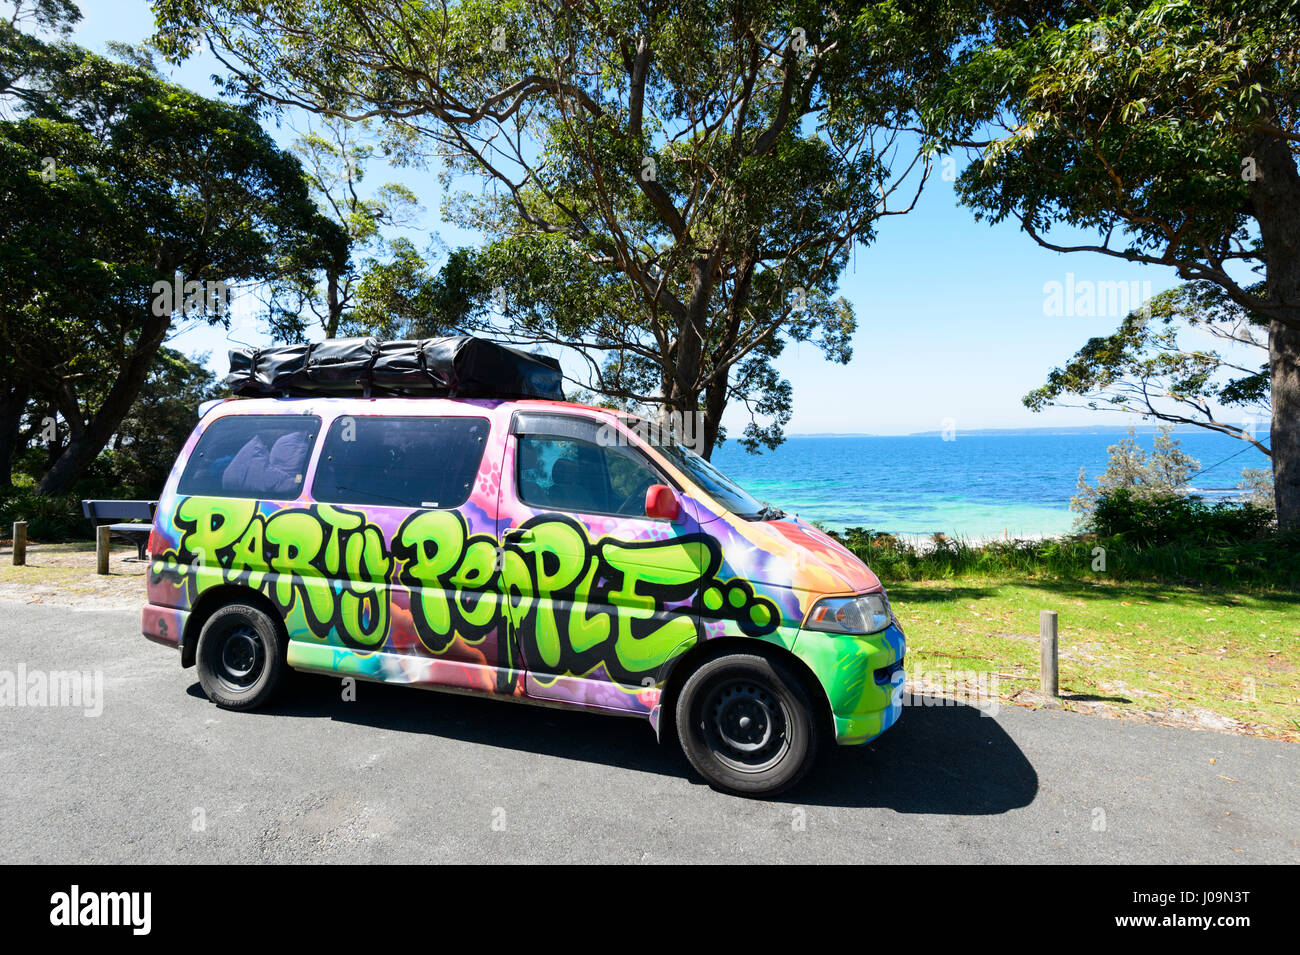 Campervan decorated with graffiti parked at Hyams Beach, Jervis Bay, South Coast, New South Wales, NSW, Australia - Stock Image